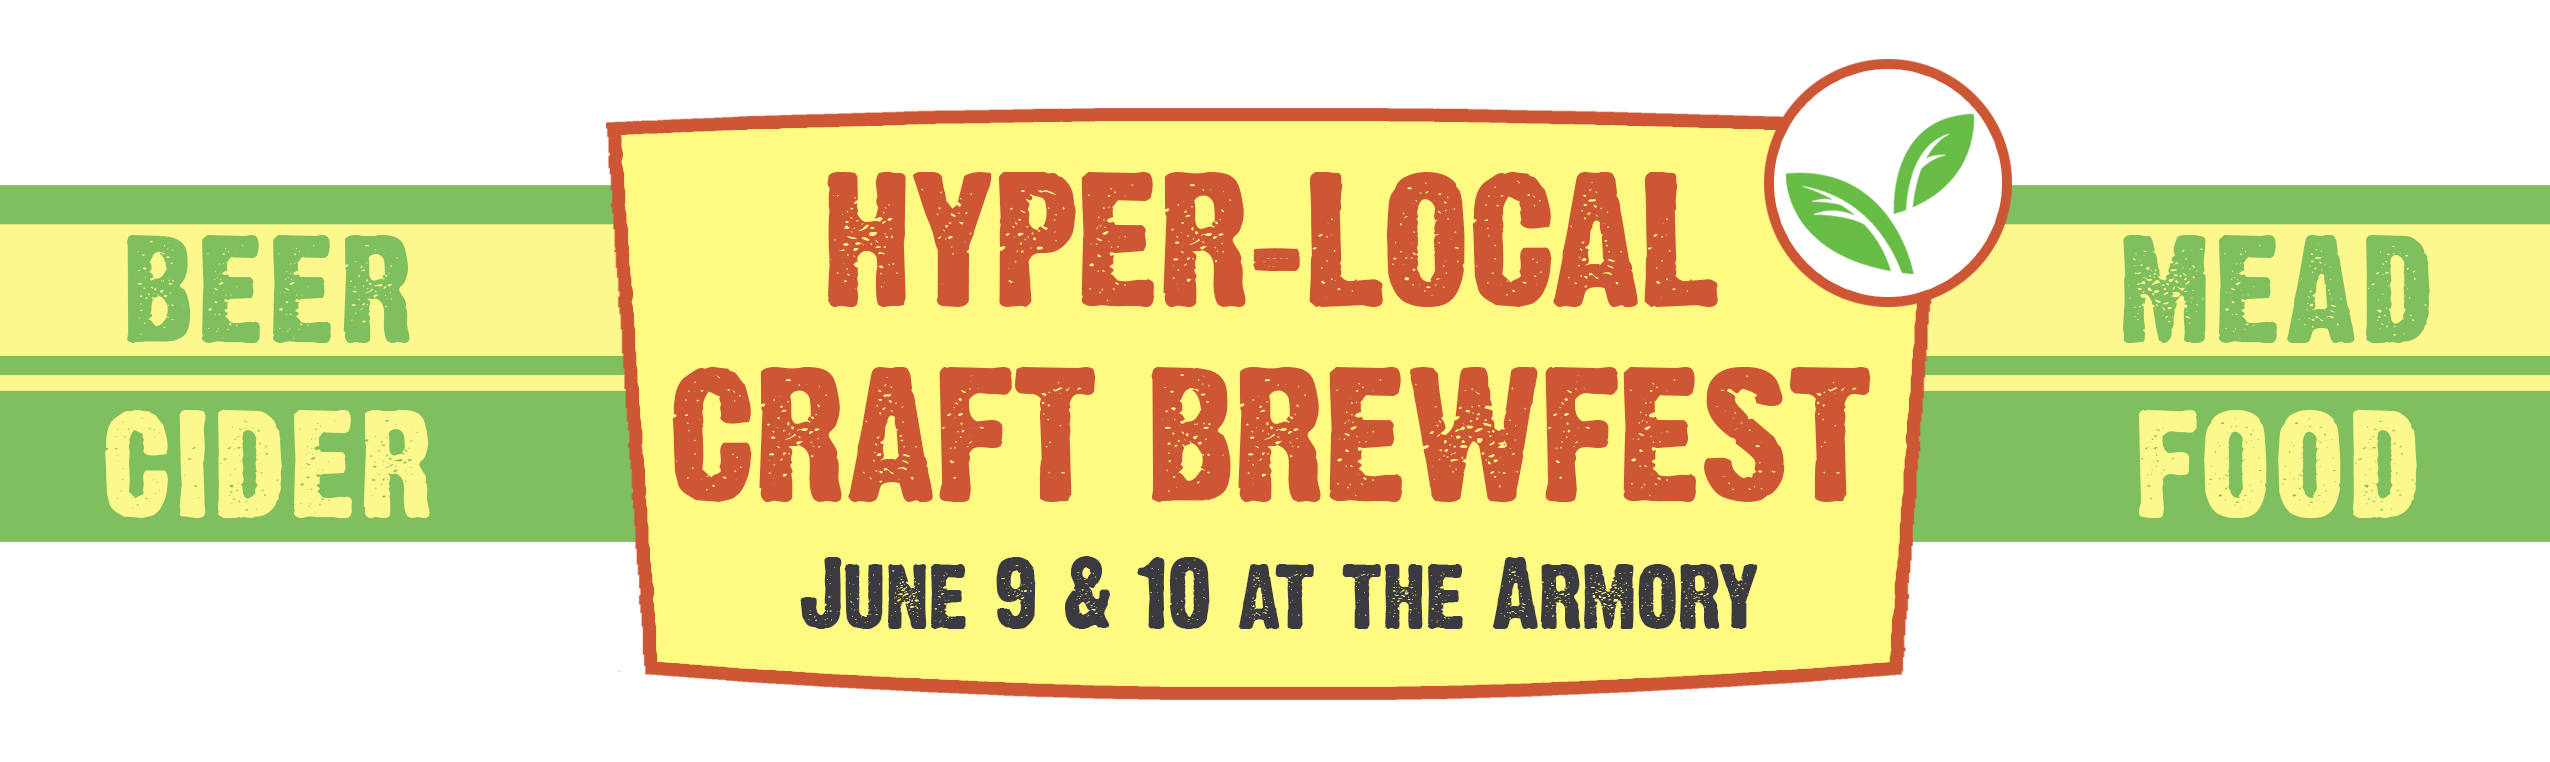 Hyper-Local Craft Brewfest, June 9 & 10 @ The Armory